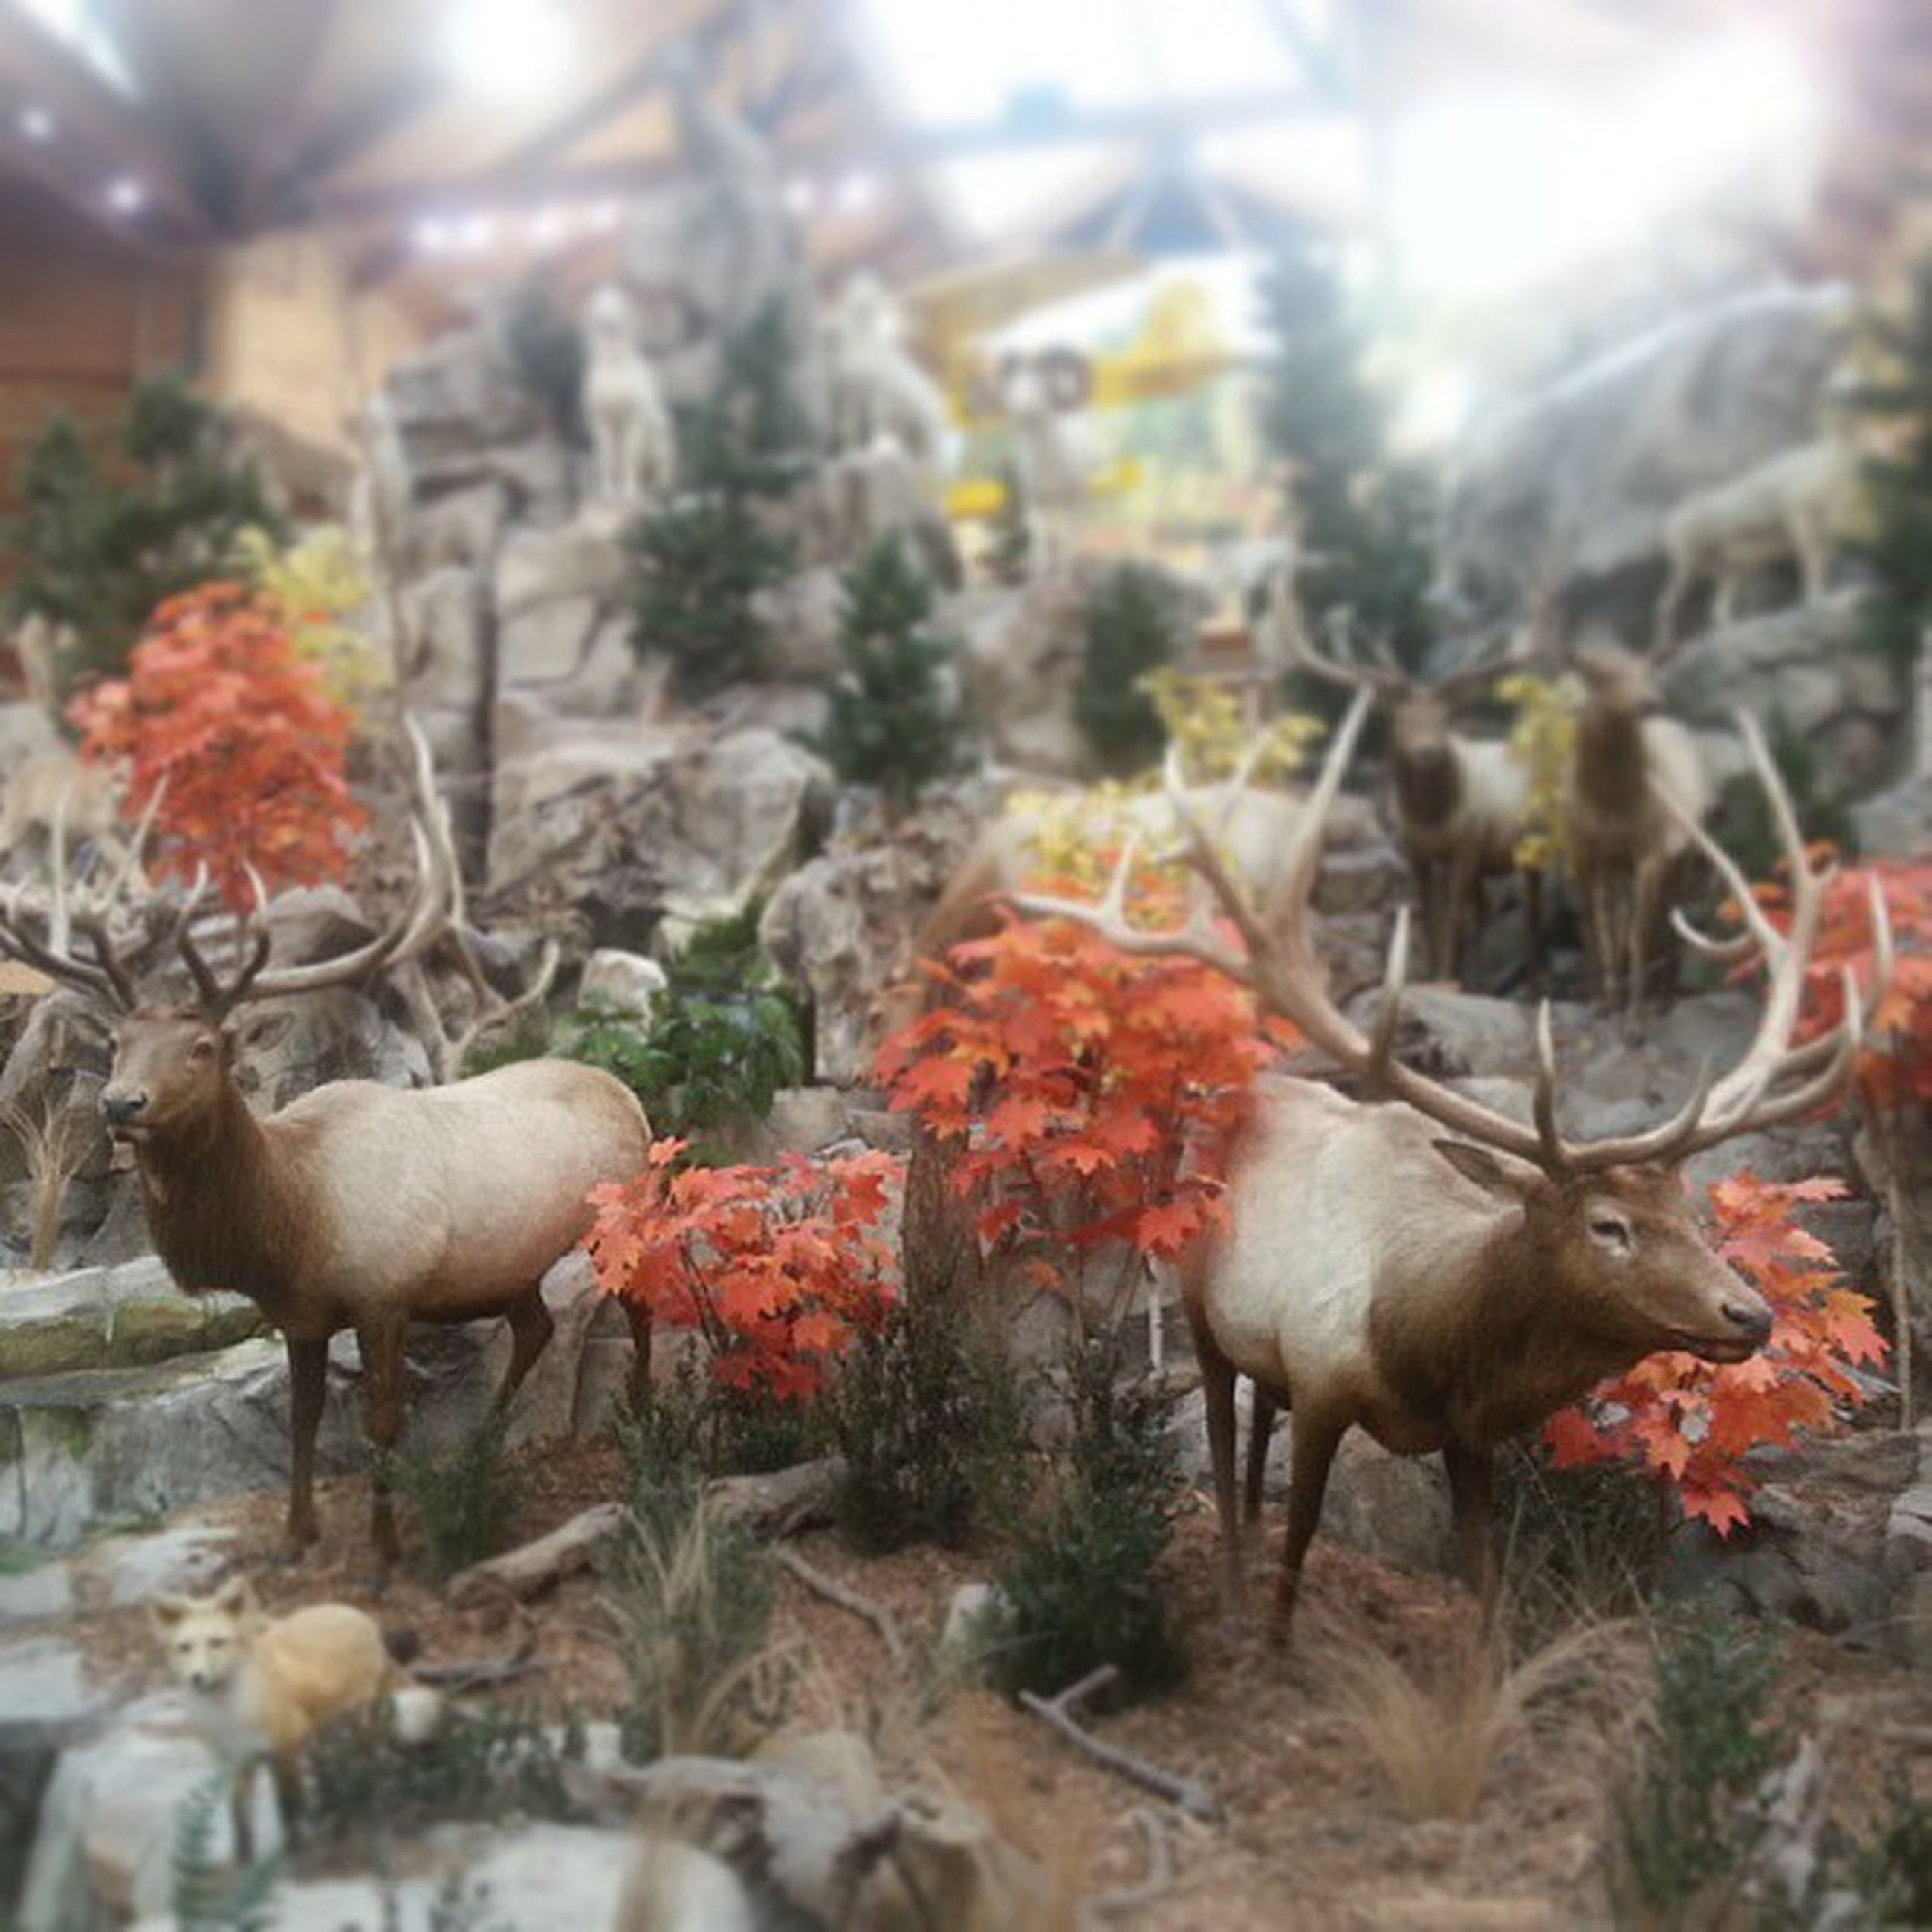 animal themes, livestock, bird, food and drink, animals in the wild, domestic animals, food, medium group of animals, chicken - bird, focus on foreground, selective focus, close-up, wildlife, field, indoors, day, nature, no people, animals in captivity